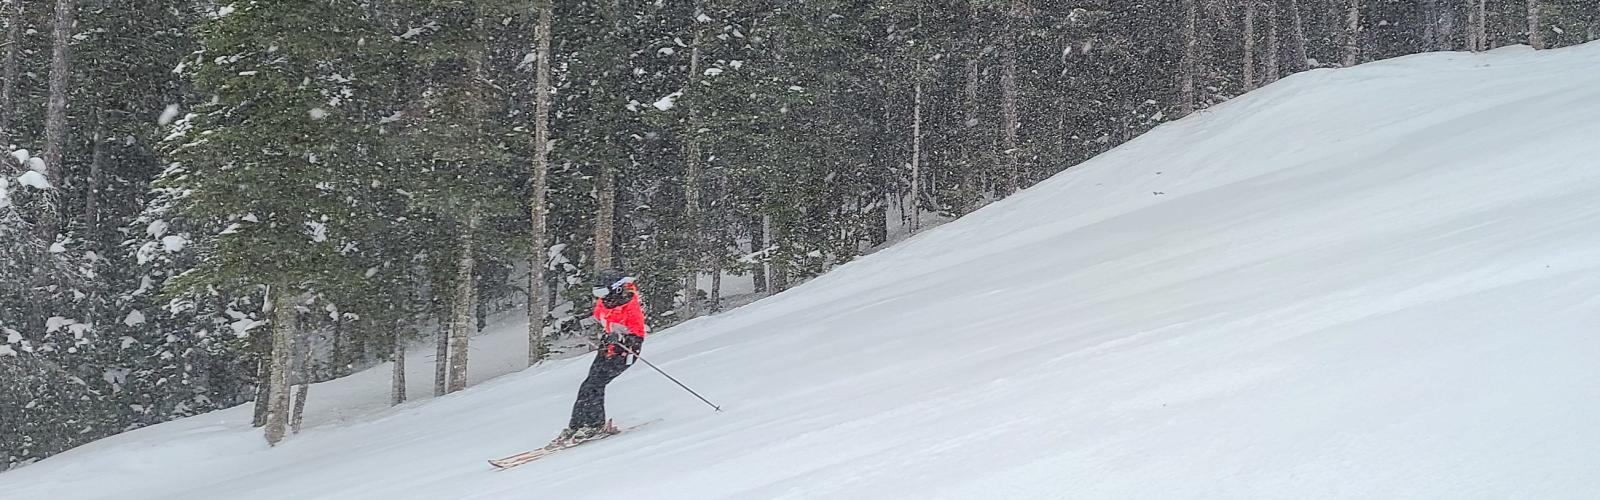 Skier making a turn with trees in the background and snowing